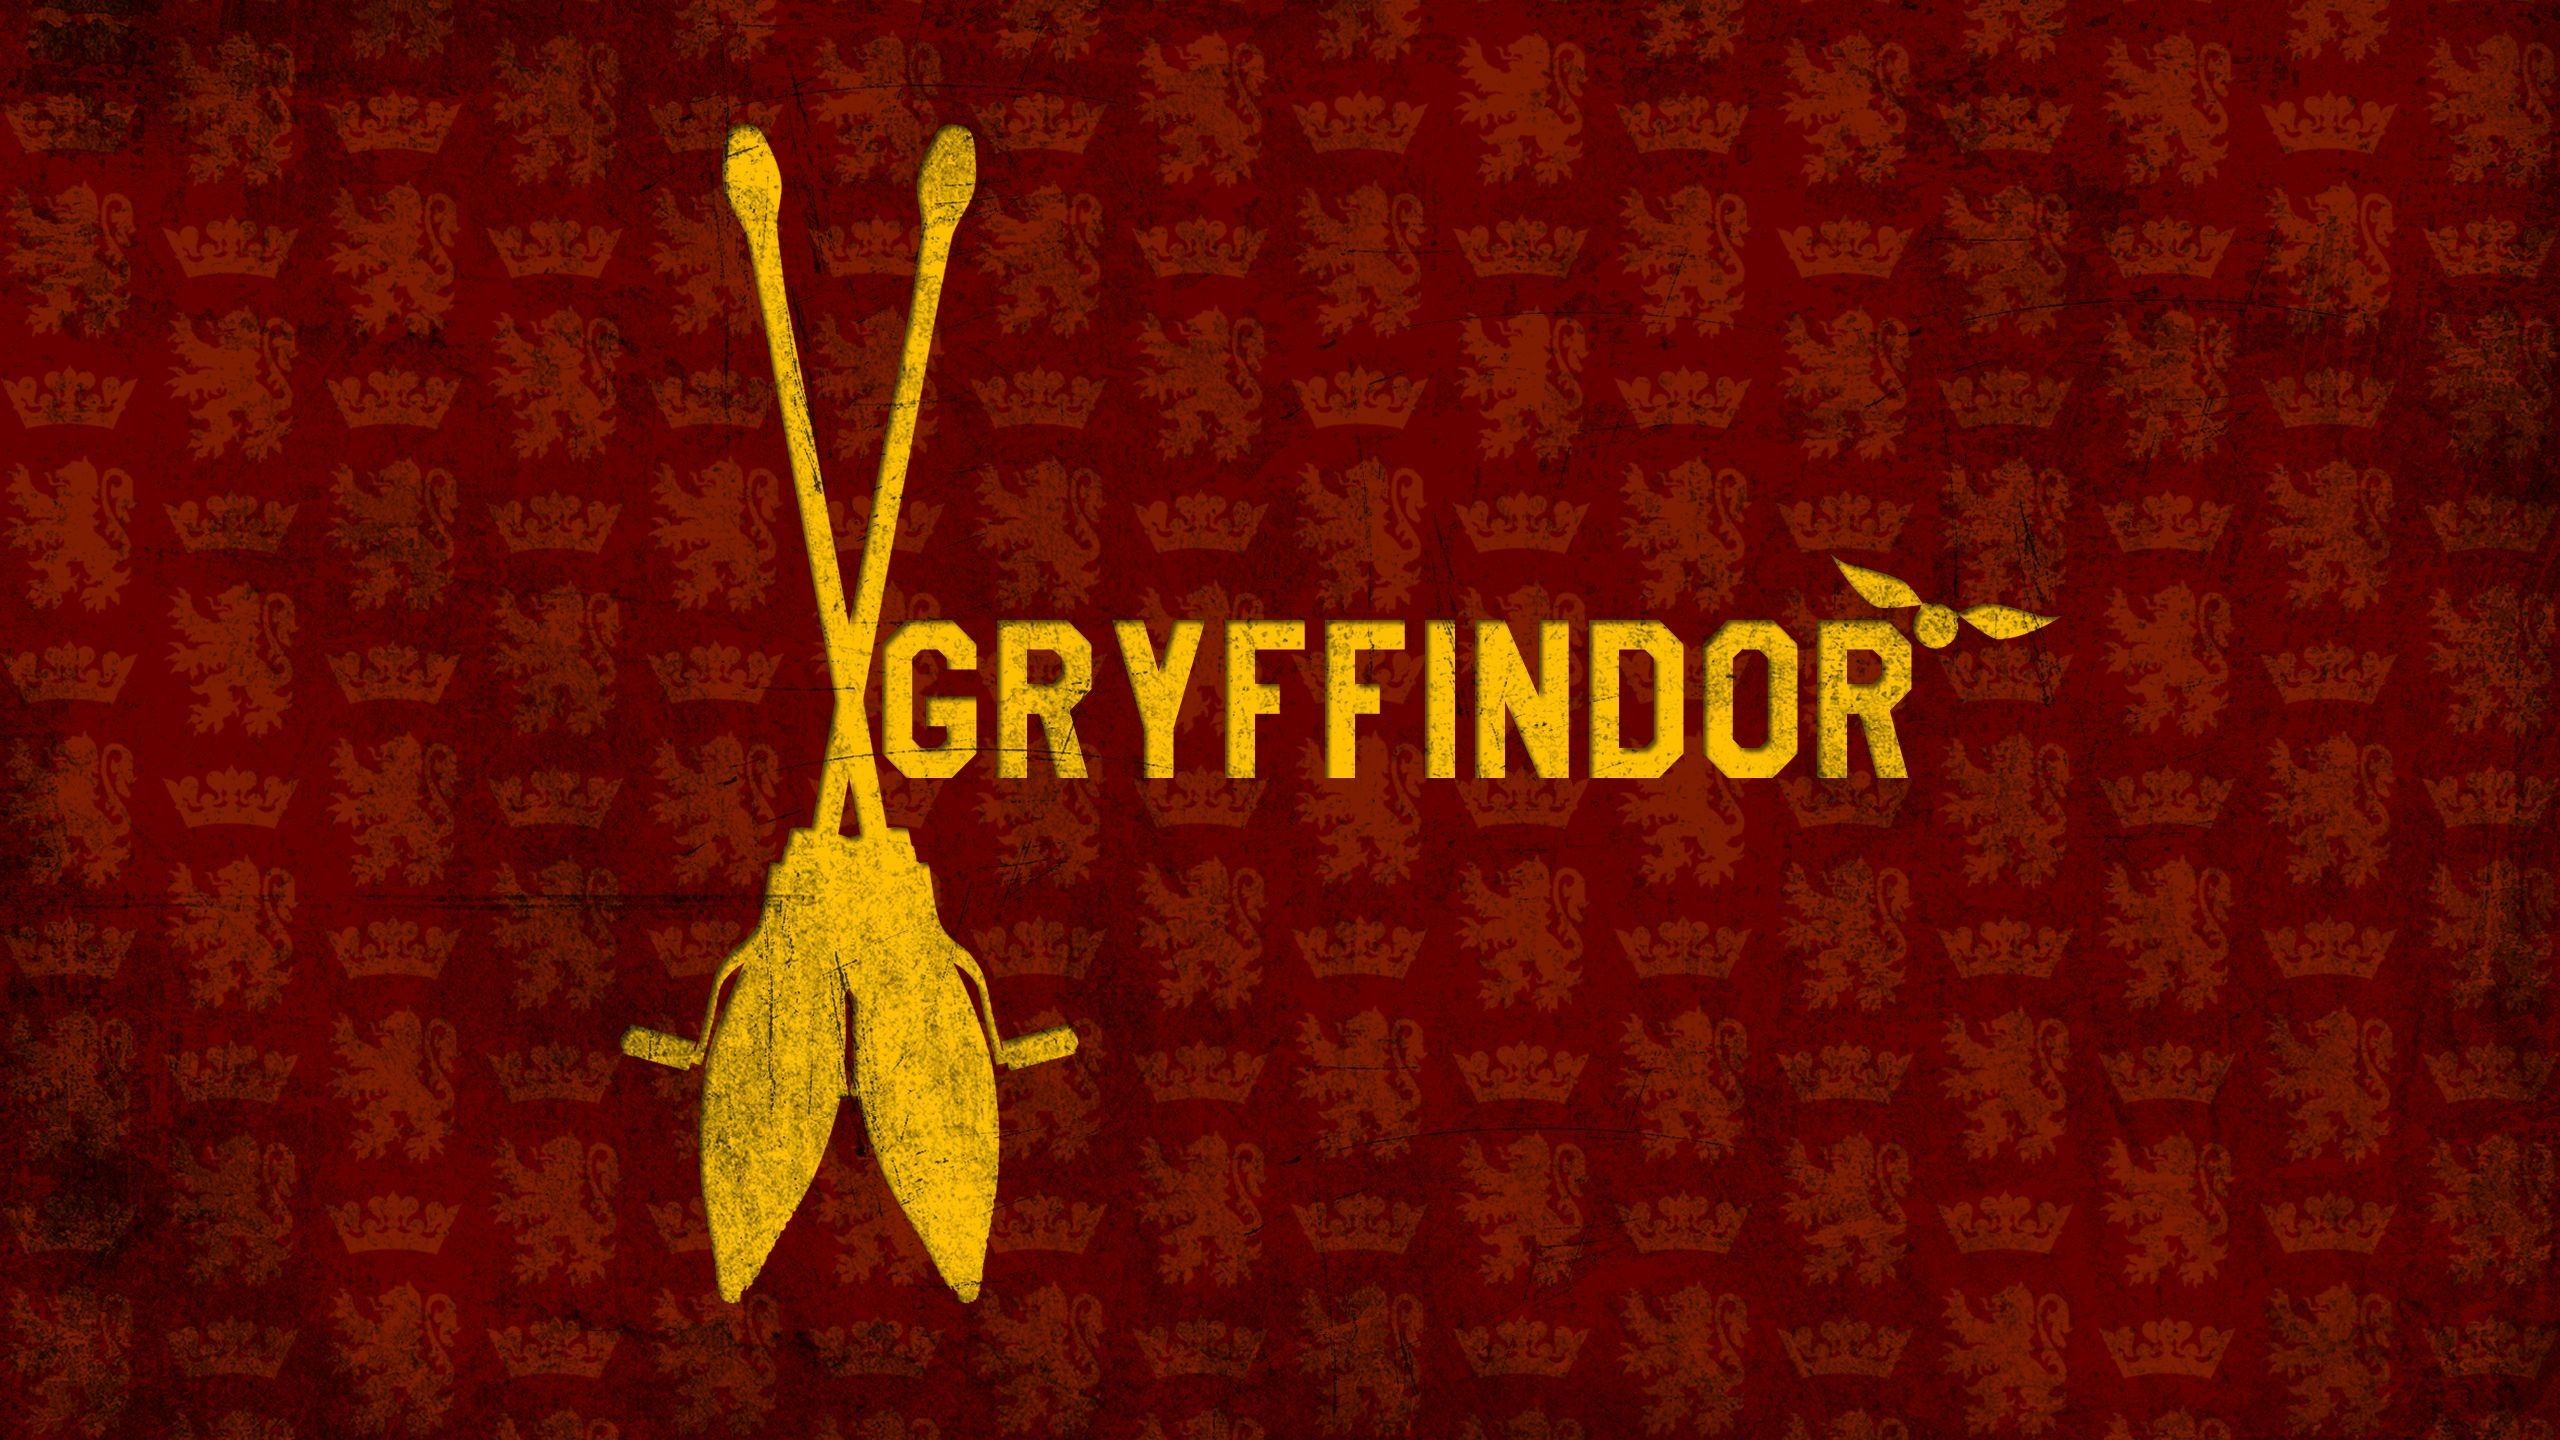 2560x1440 80+ Gryffindor Wallpapers on WallpaperPlay